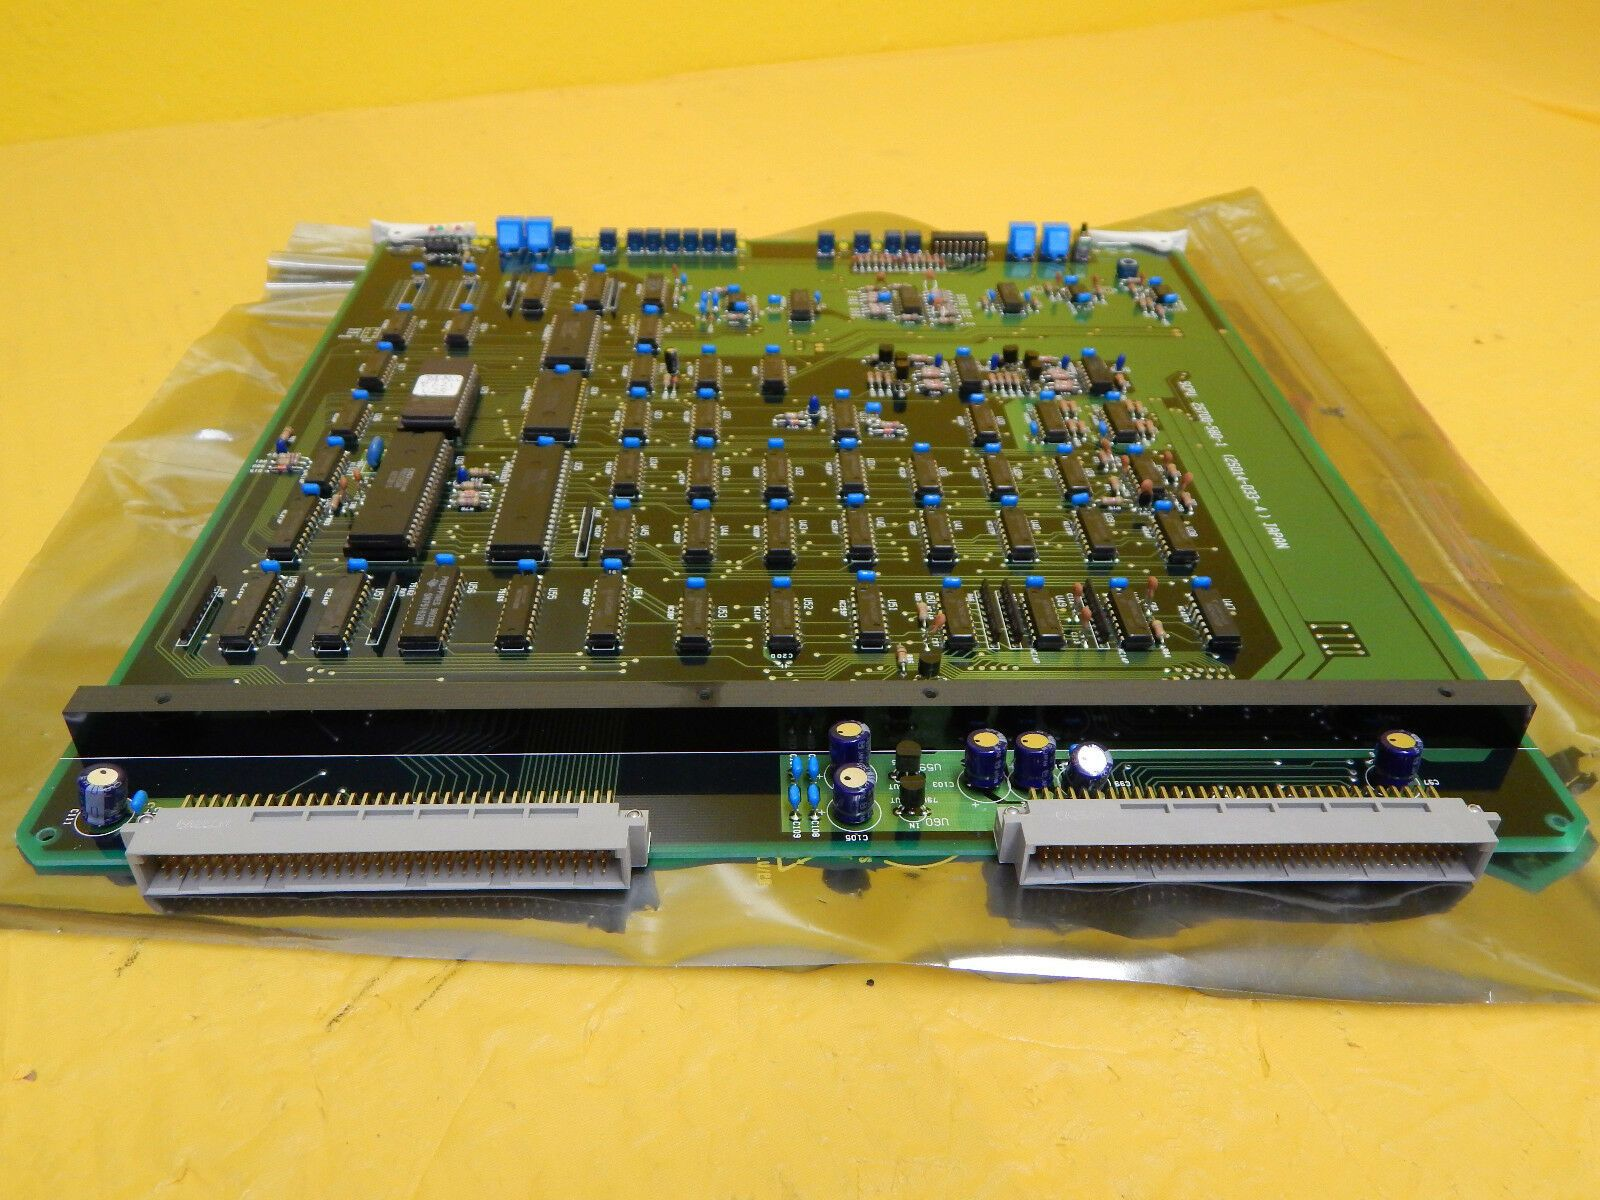 Nikon 2S700-580-1 Processor Board SCPU PCB Card 2S014-033-4 OPTISTATION 3 Used